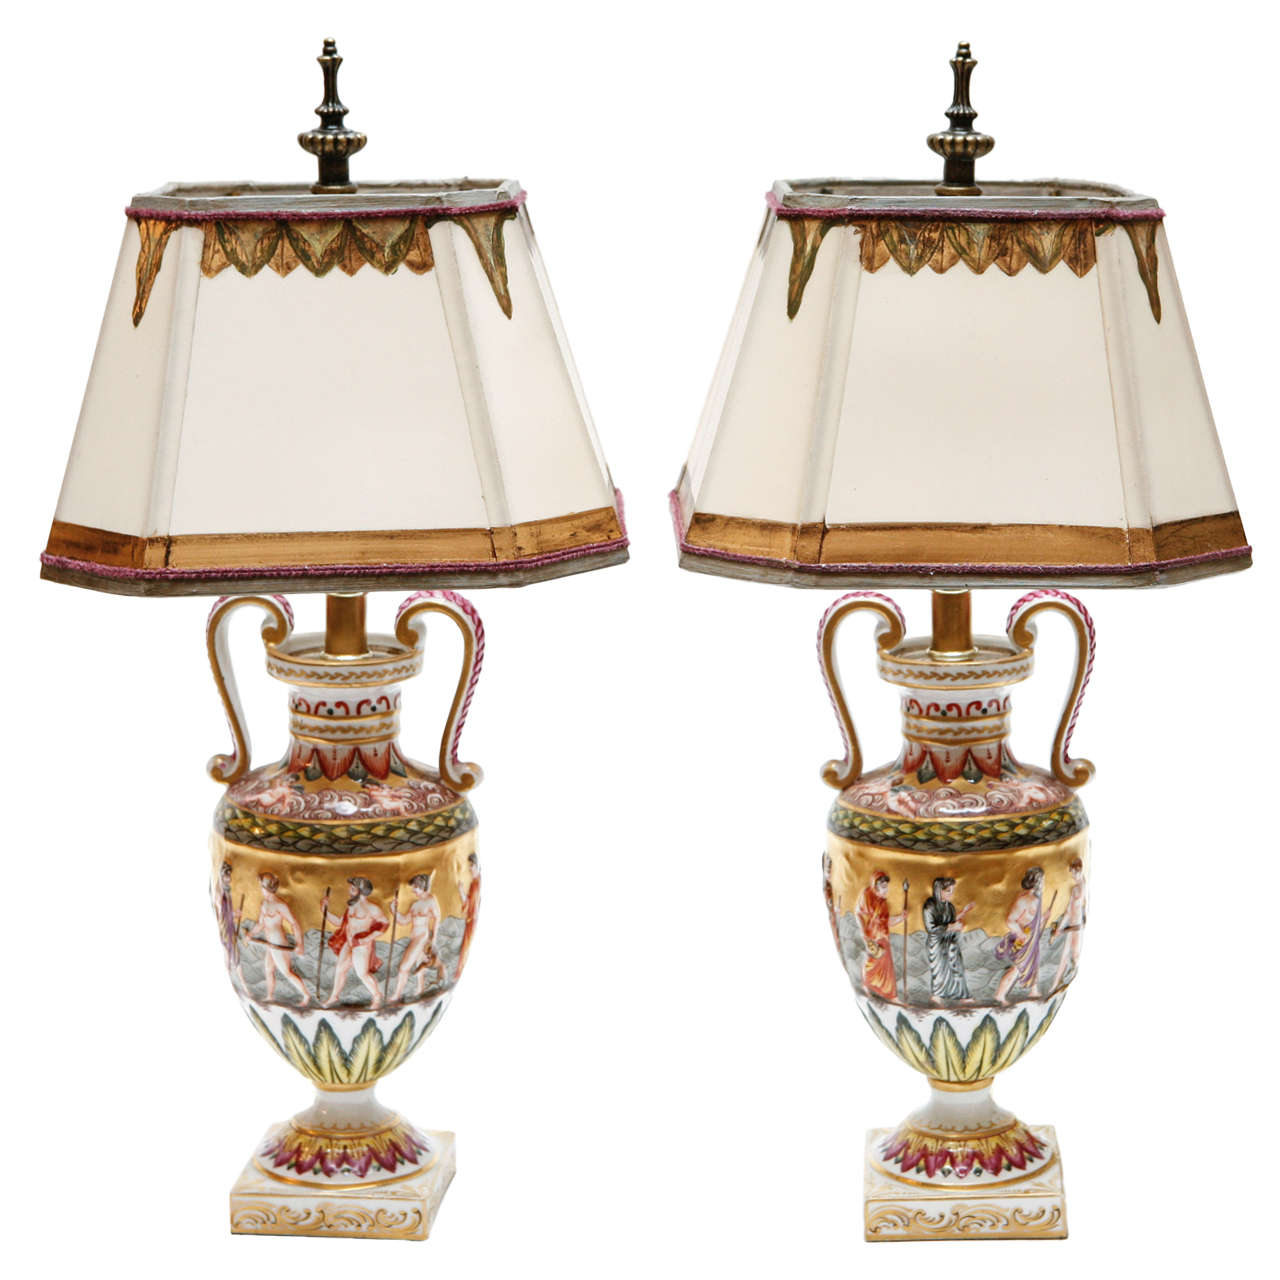 Attractive Pair Of 19th Century Italian Capodimonte Lamps For Sale